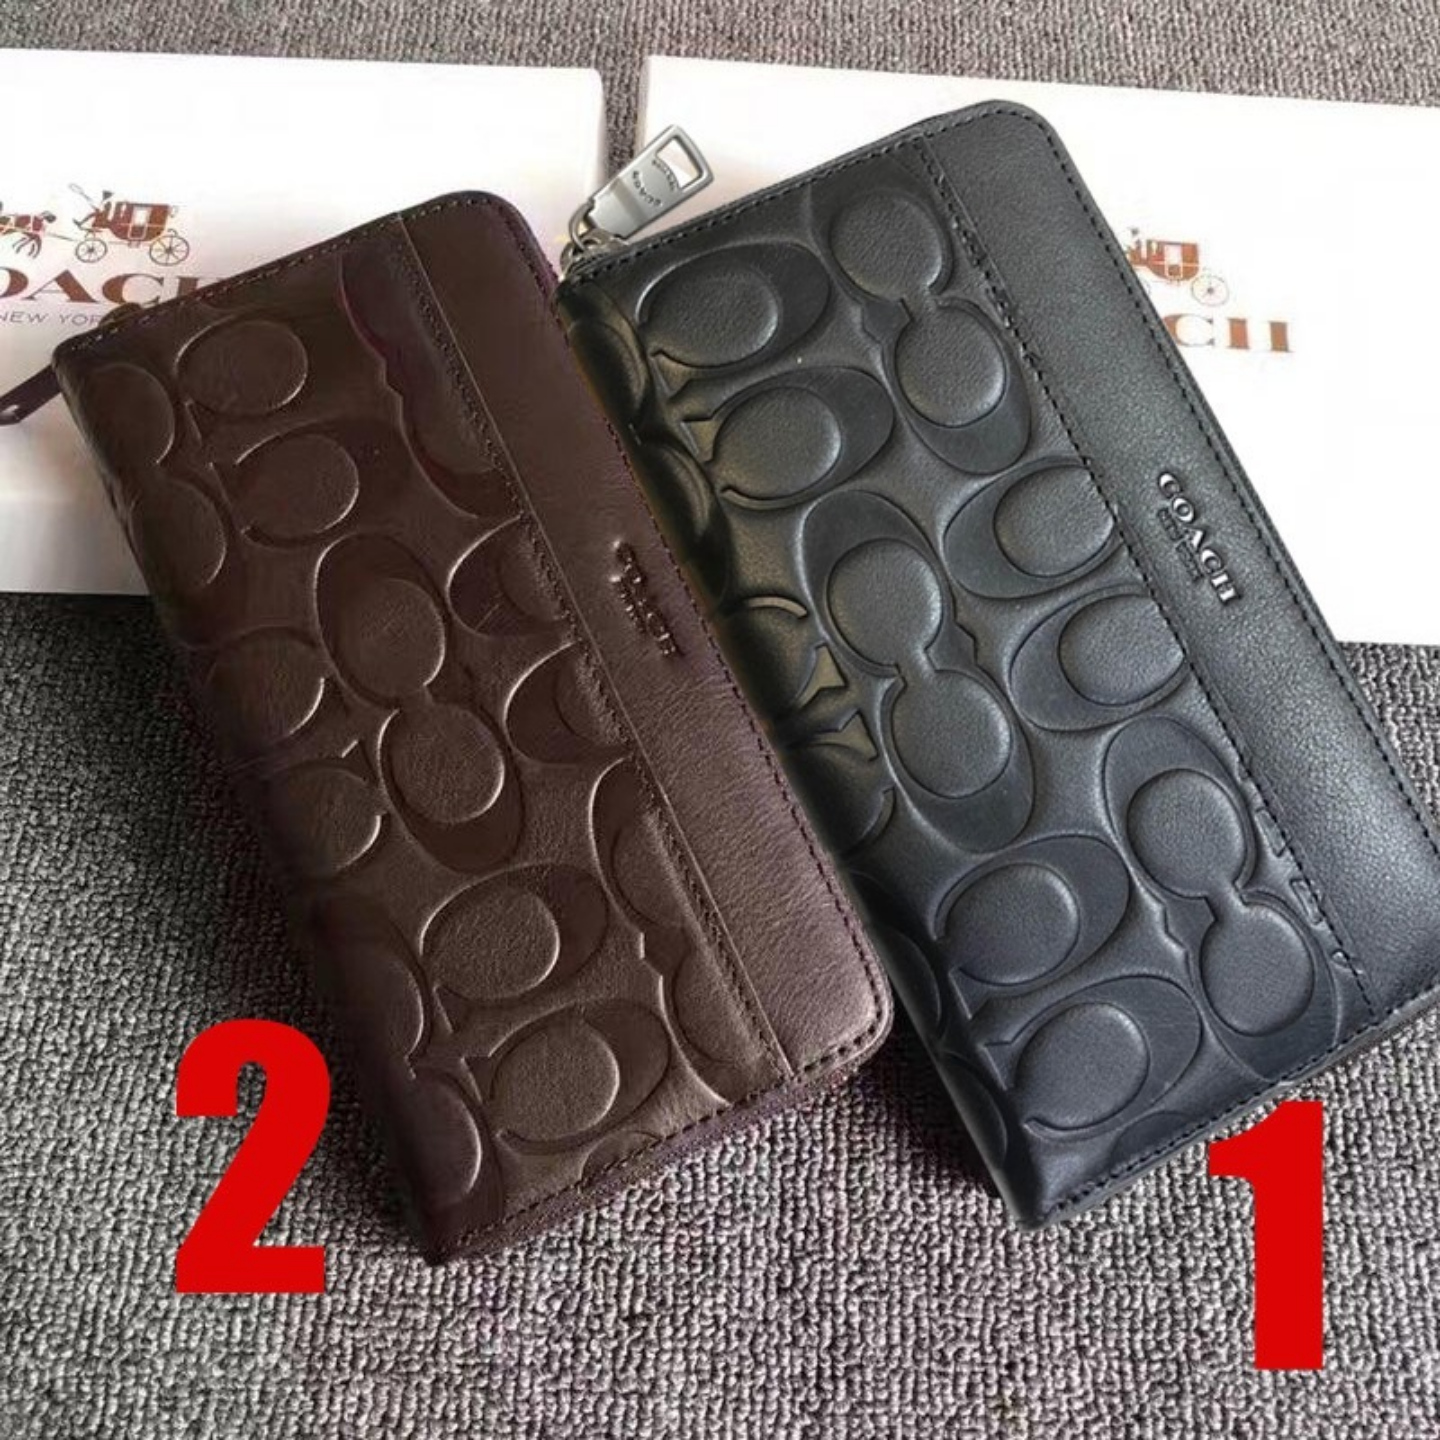 (SG COD) Limited Promotion) F74999 Men's Embossed Leather Long Wallet Coach Zip Wallet